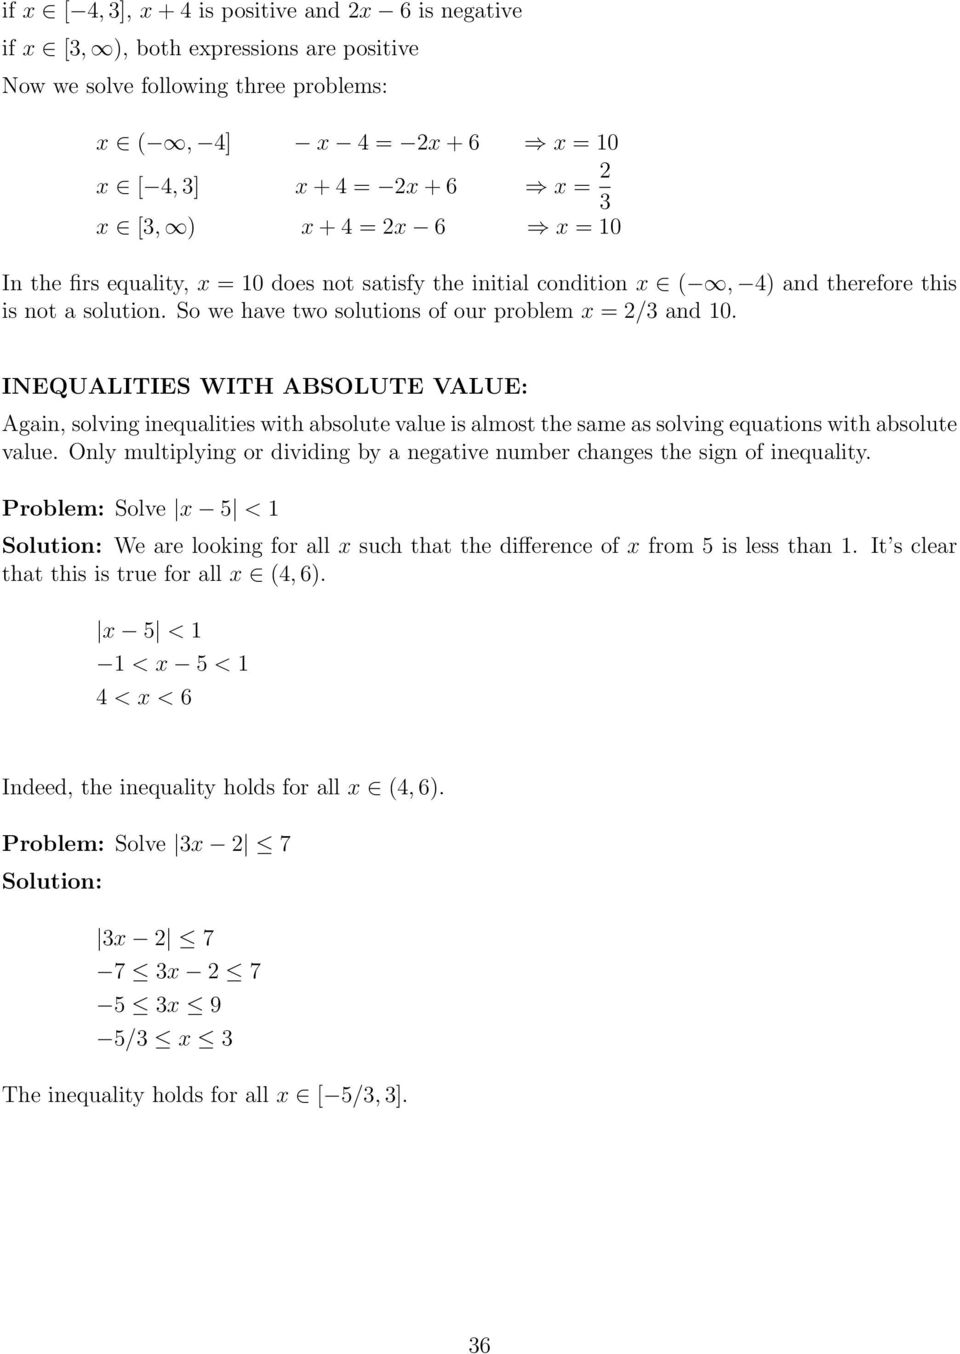 INEQUALITIES WITH ABSOLUTE VALUE: Again, solving inequalities with absolute value is almost the same as solving equations with absolute value.